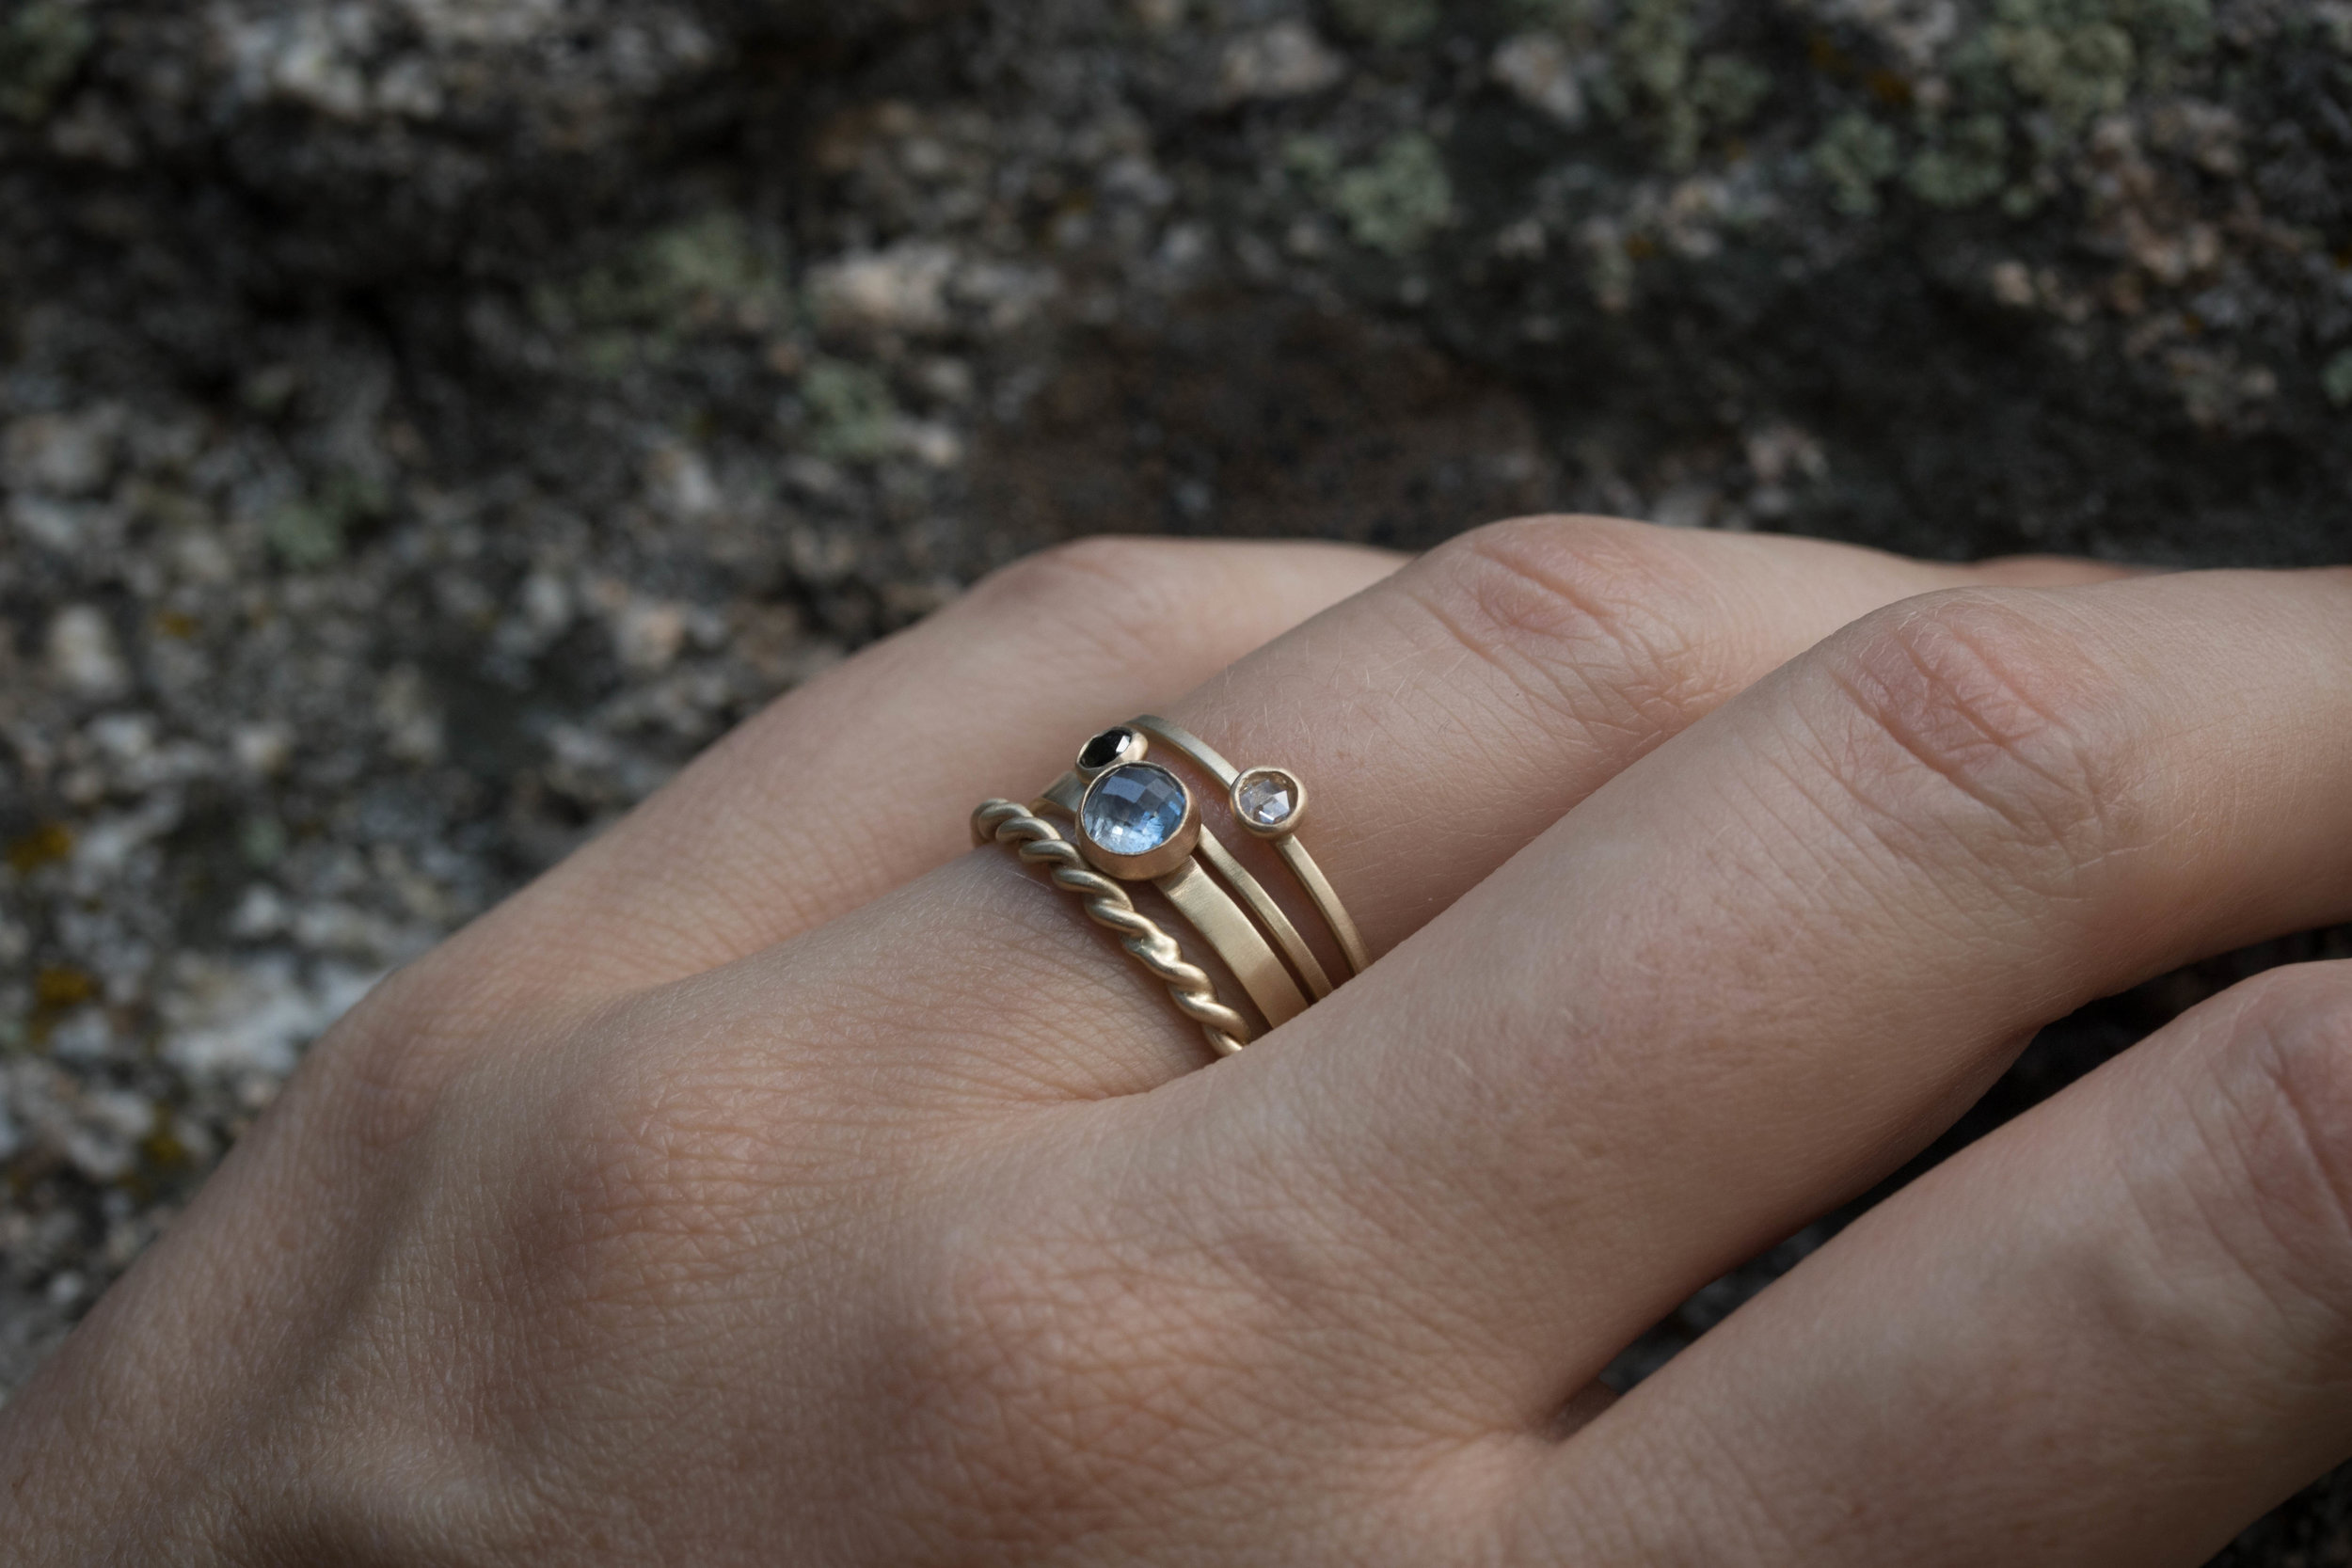 The  Plain Rope ,  Katherine Sapphire ,  Black Diamond Terence  and  White Diamond Terence  rings all in 14k yellow gold.